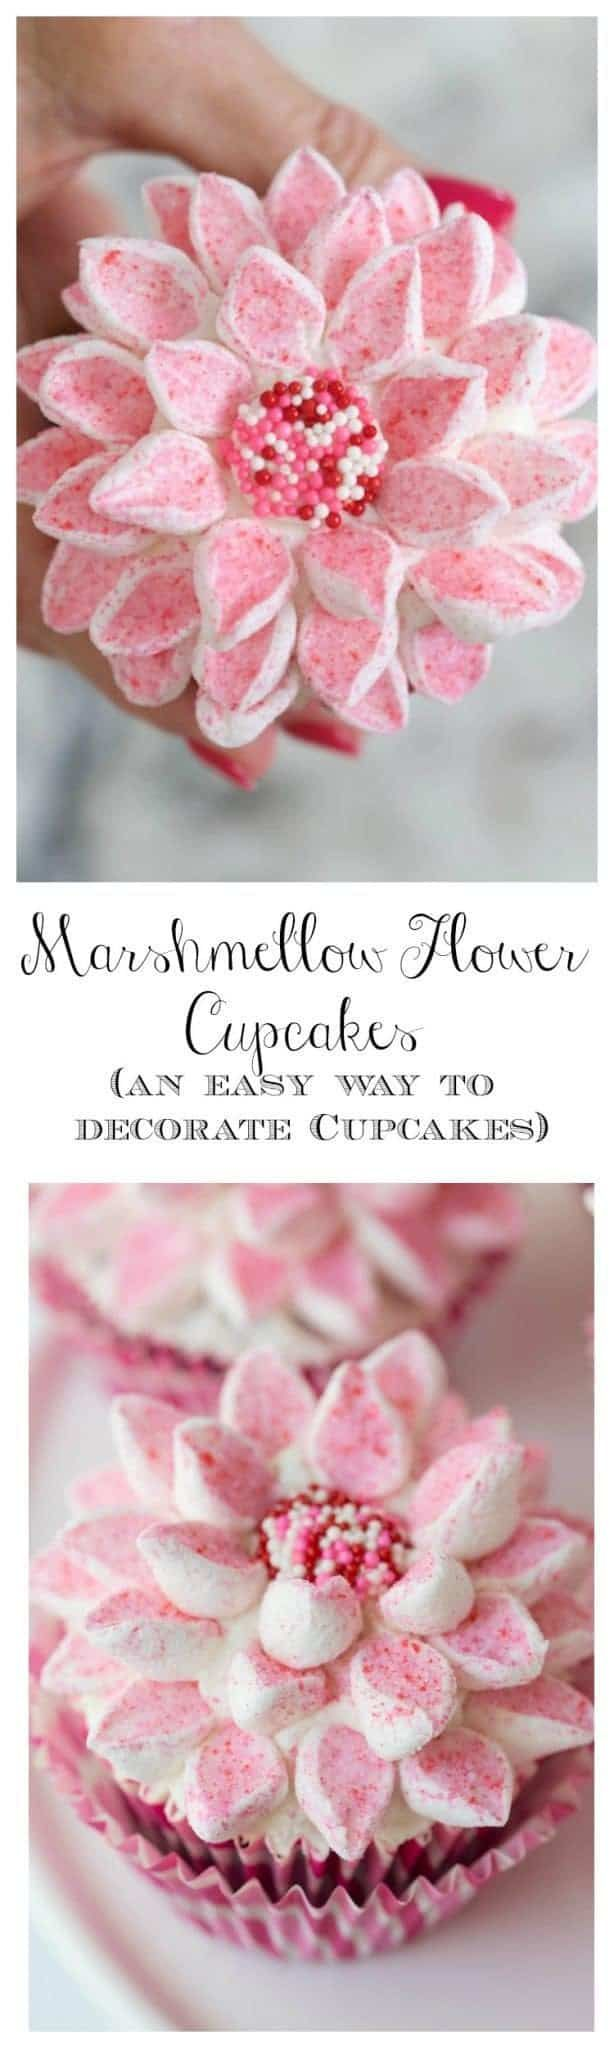 Marshmallow Flower Cupcakes - the easy way to decorate beautiful cupcakes!